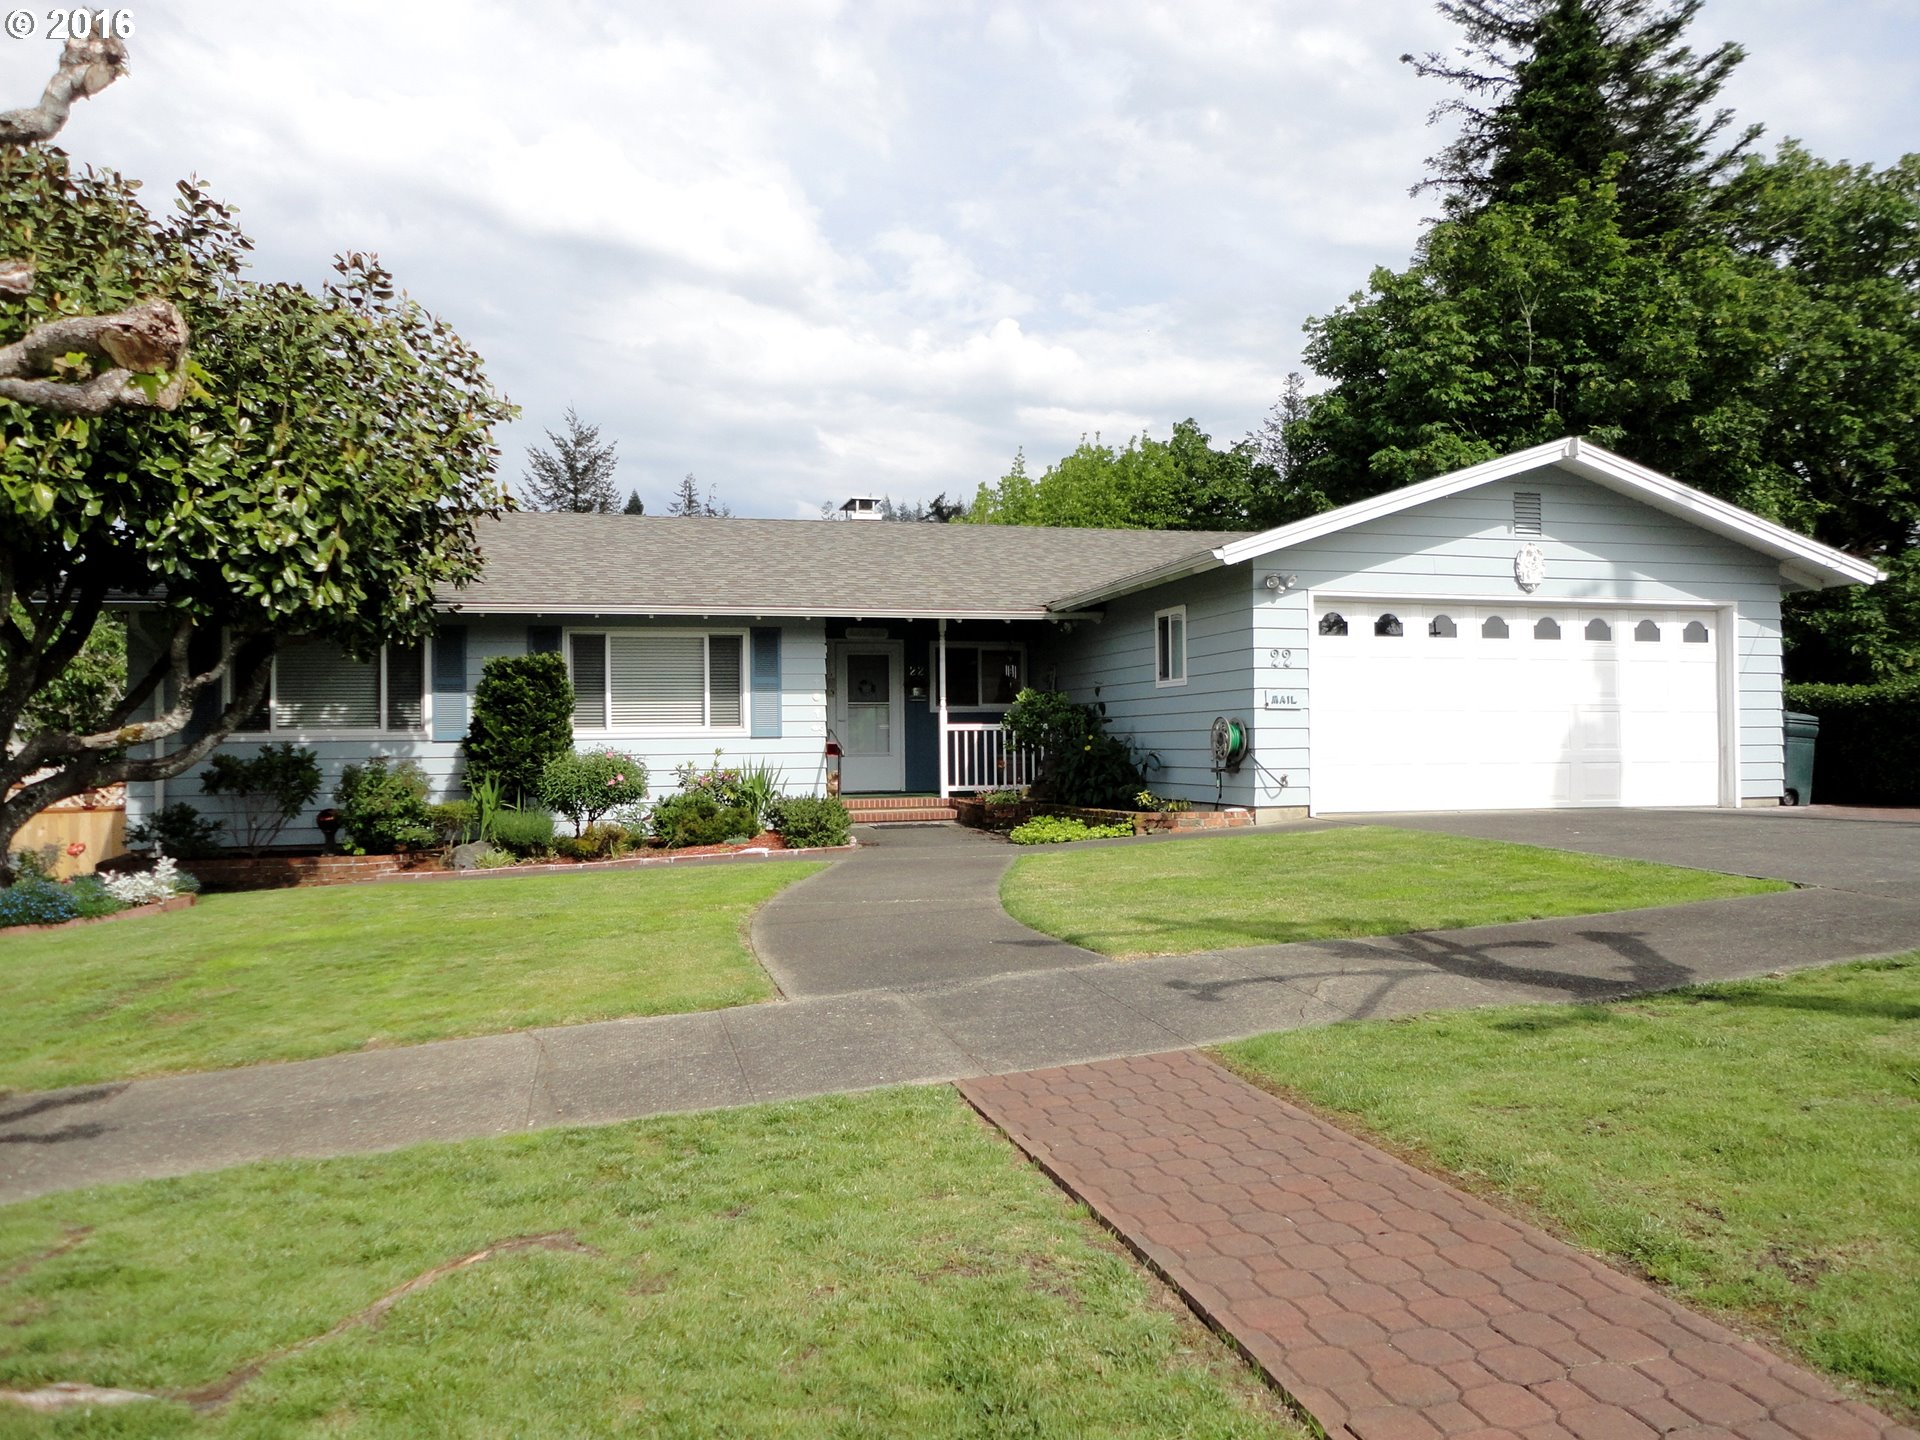 22 S DEAN , Coquille OR 97423